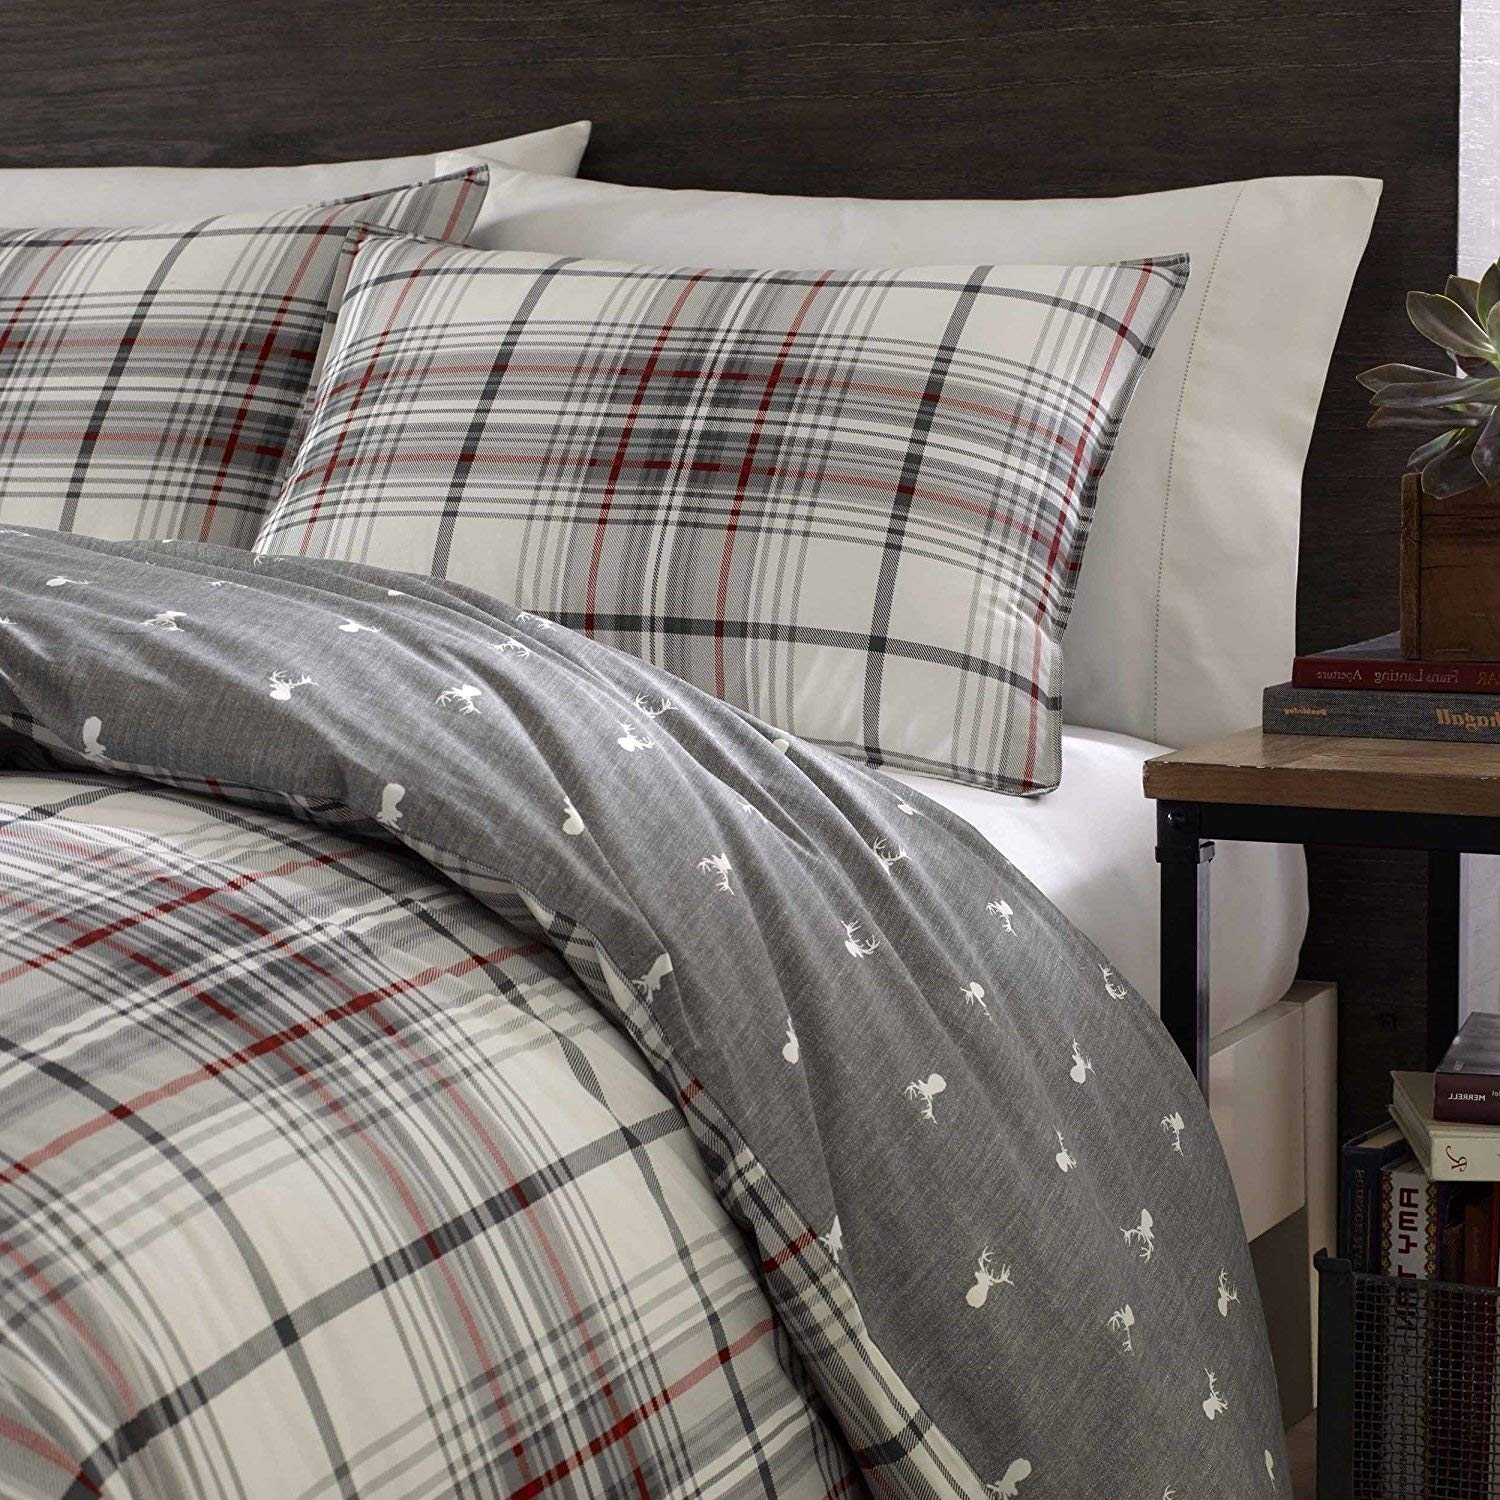 DP 3pc Grey Red White Plaid Comforter King Set, Deer Pattern Flannel Cotton, Tartan Bedding Checked Buffalo Check Classic Madras Cabin Lodge Lumberjack Hunting